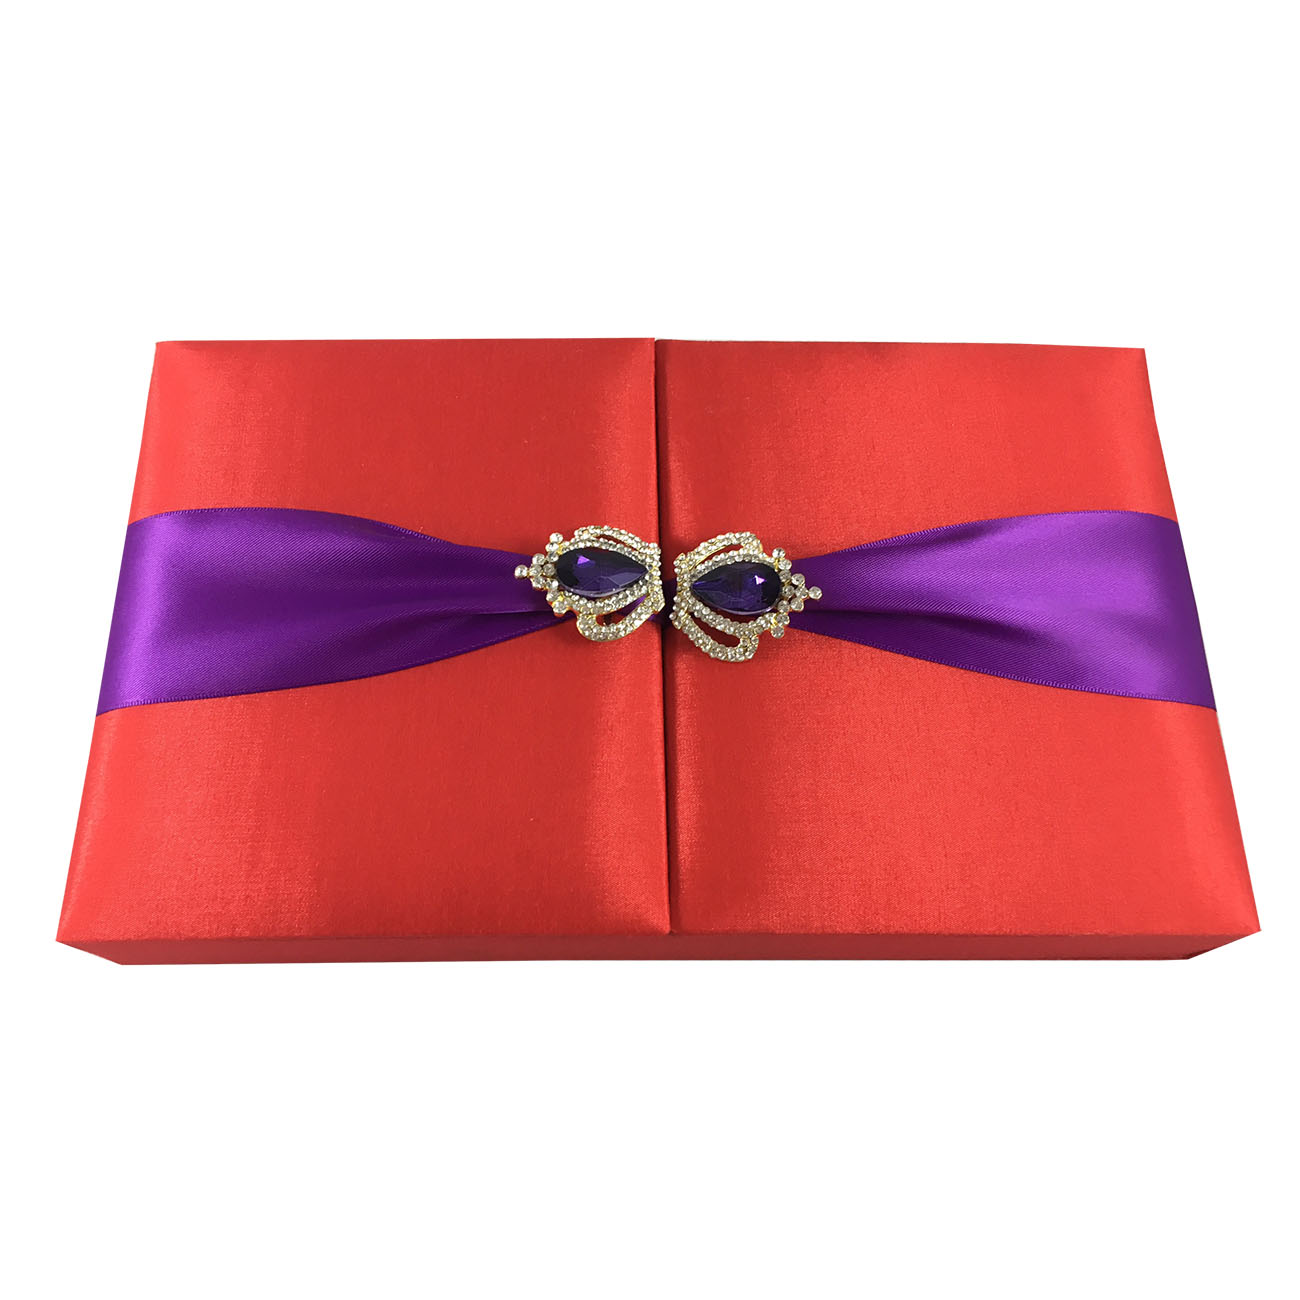 Luxury Chocolate Silk Invitation Box In Red & Purple Color - Luxury ...